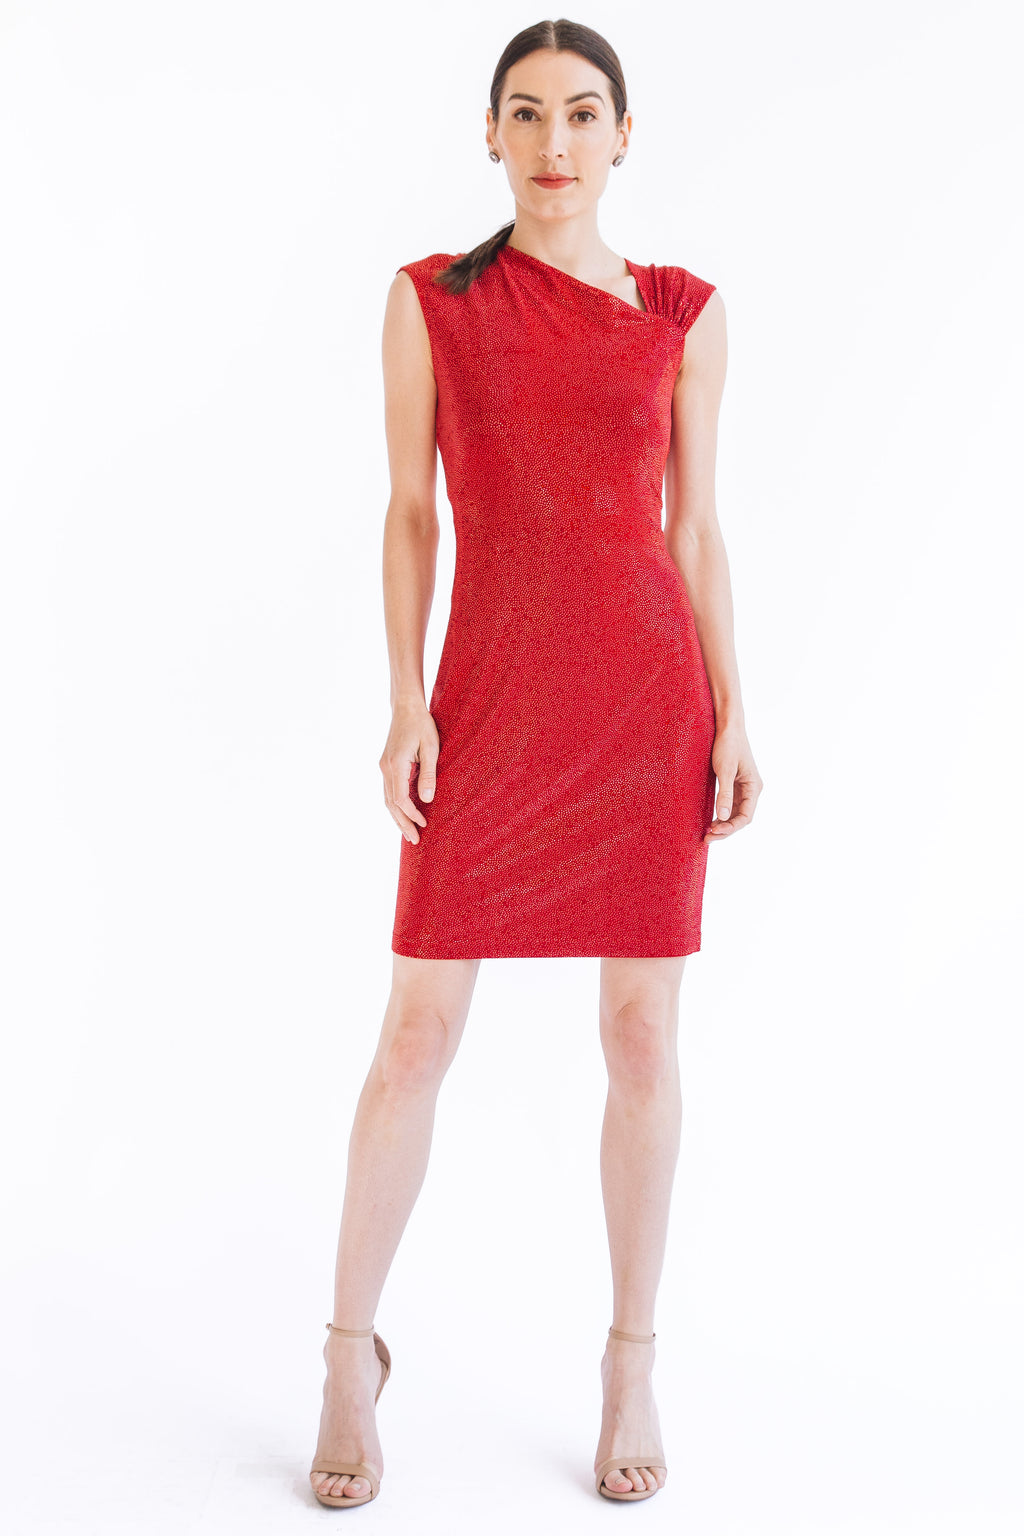 Crystal Fire Asymmetrical Dress - W1490907